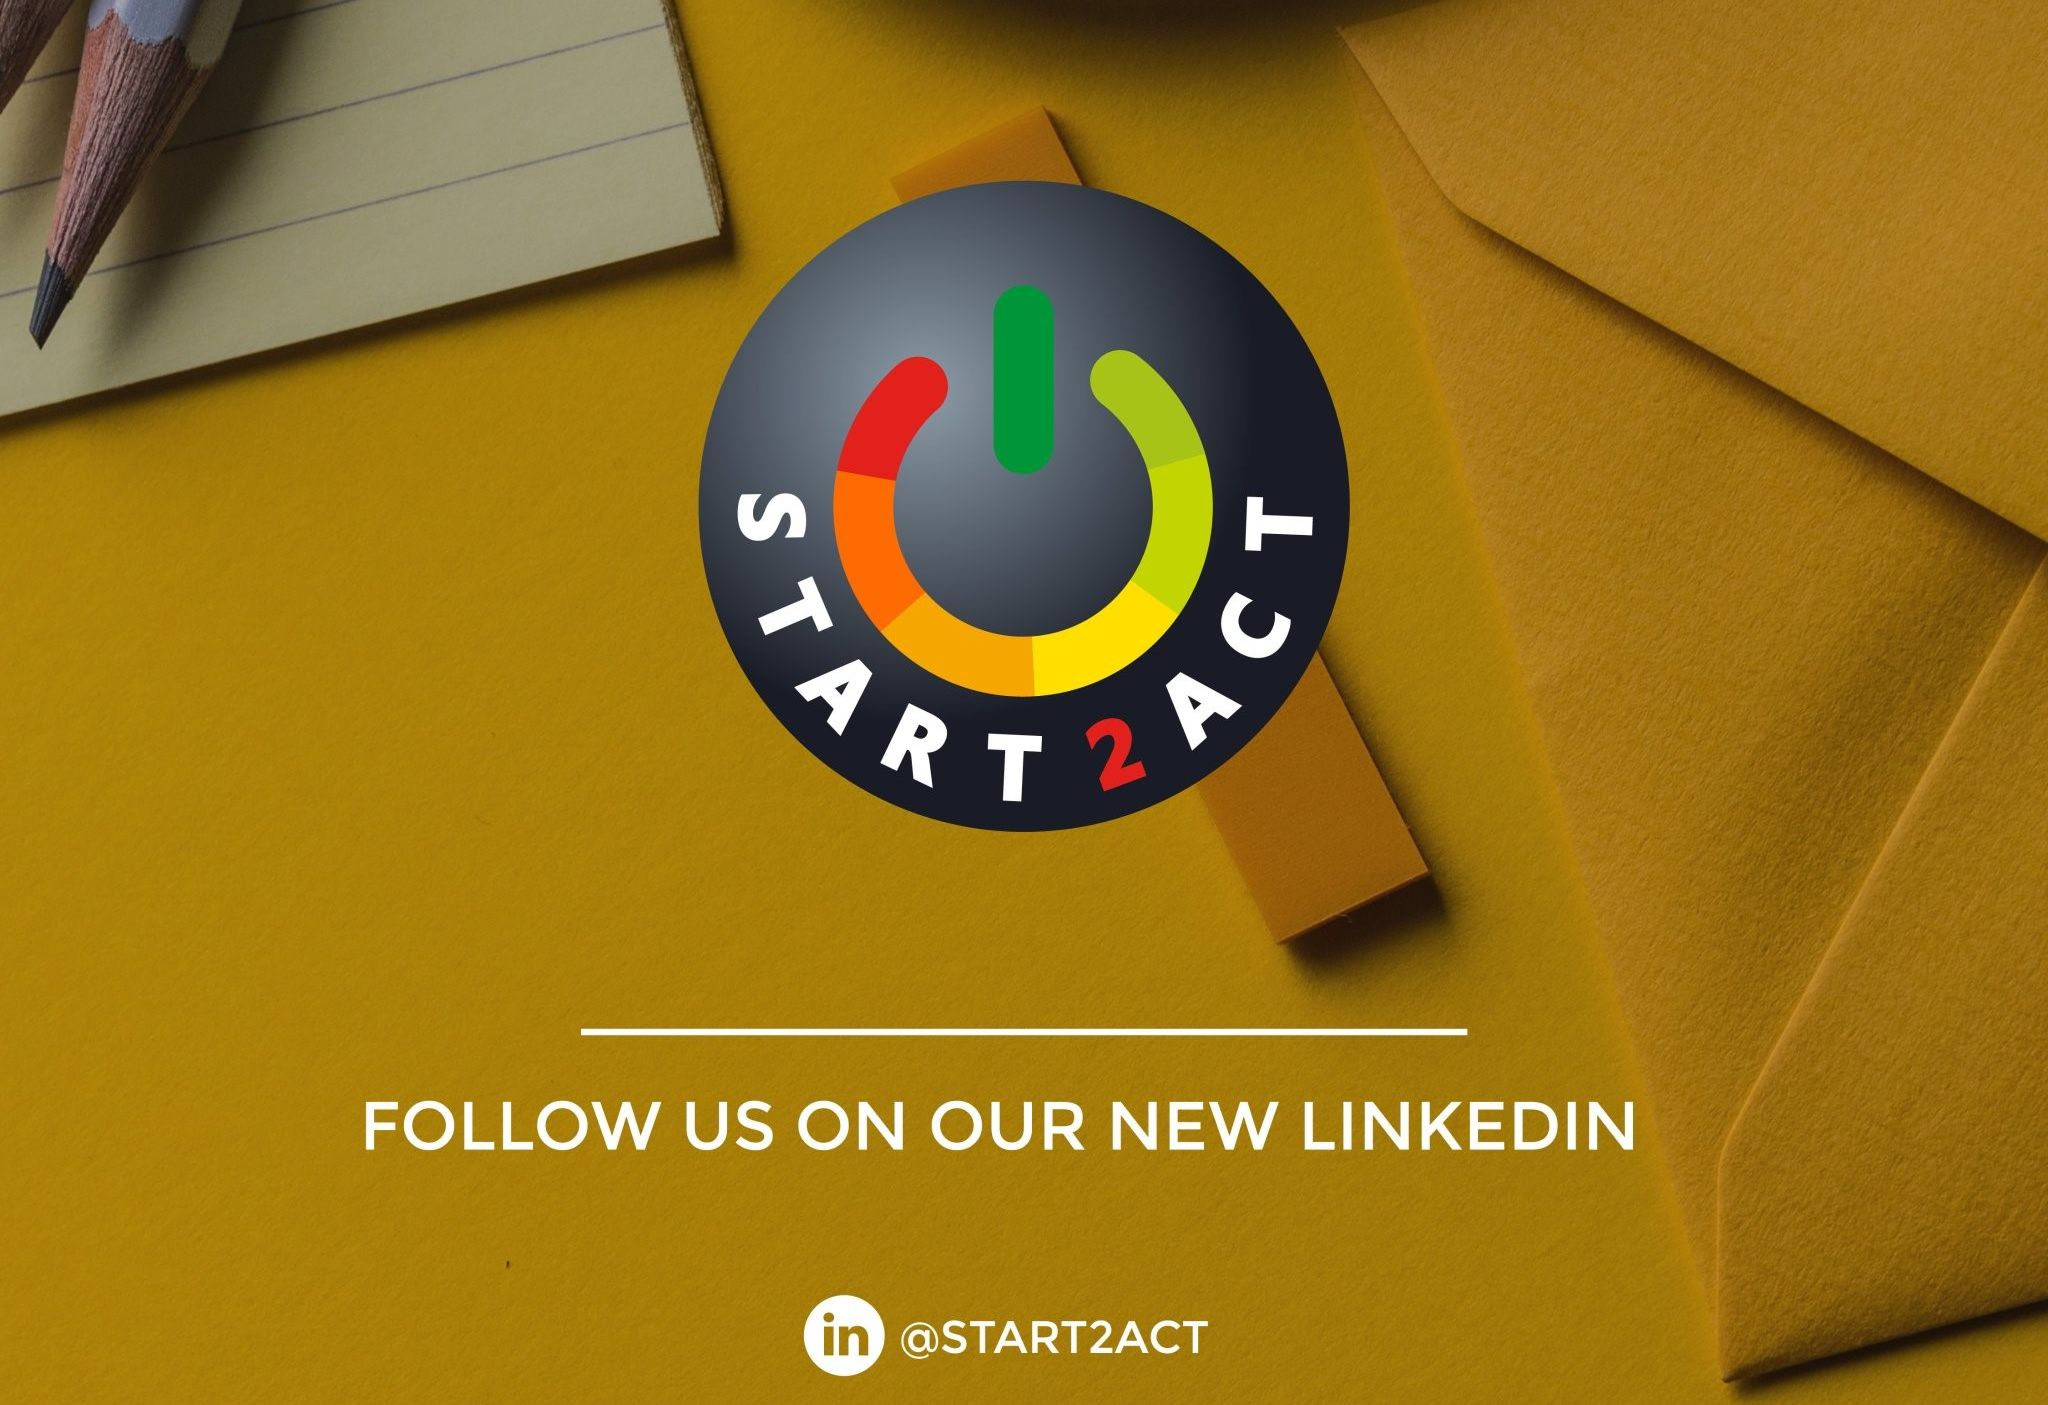 START2ACT is now on LinkedIn for better professional networking!